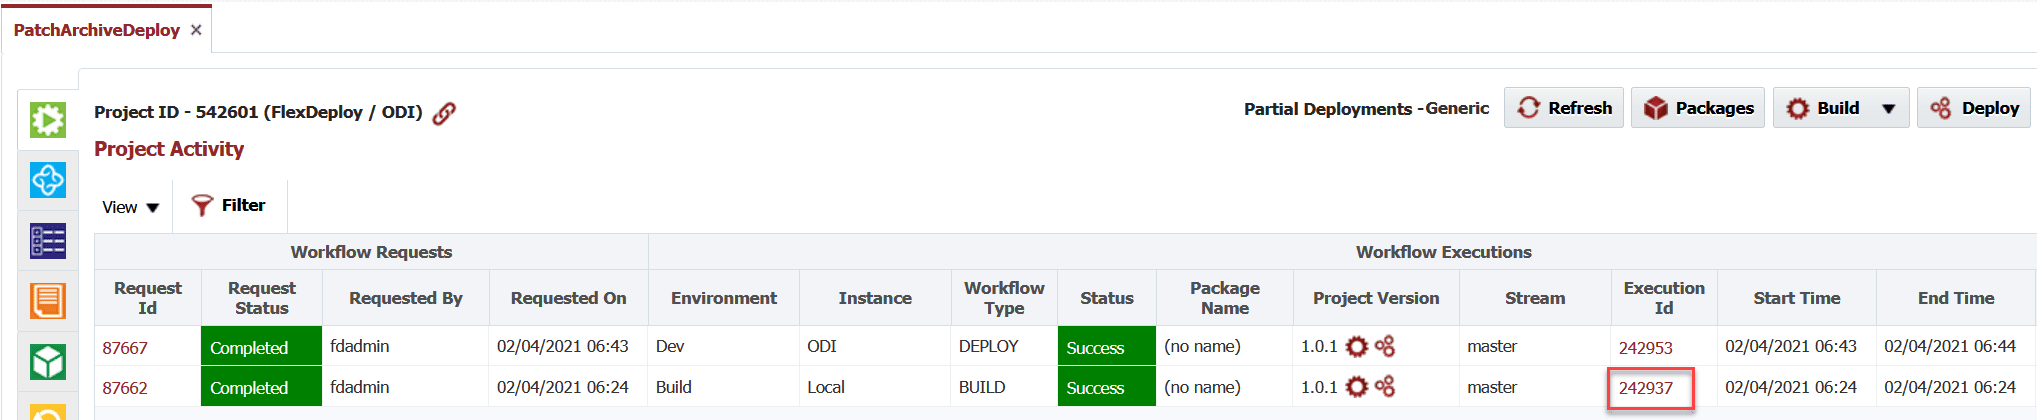 Build details in the Project Activity window